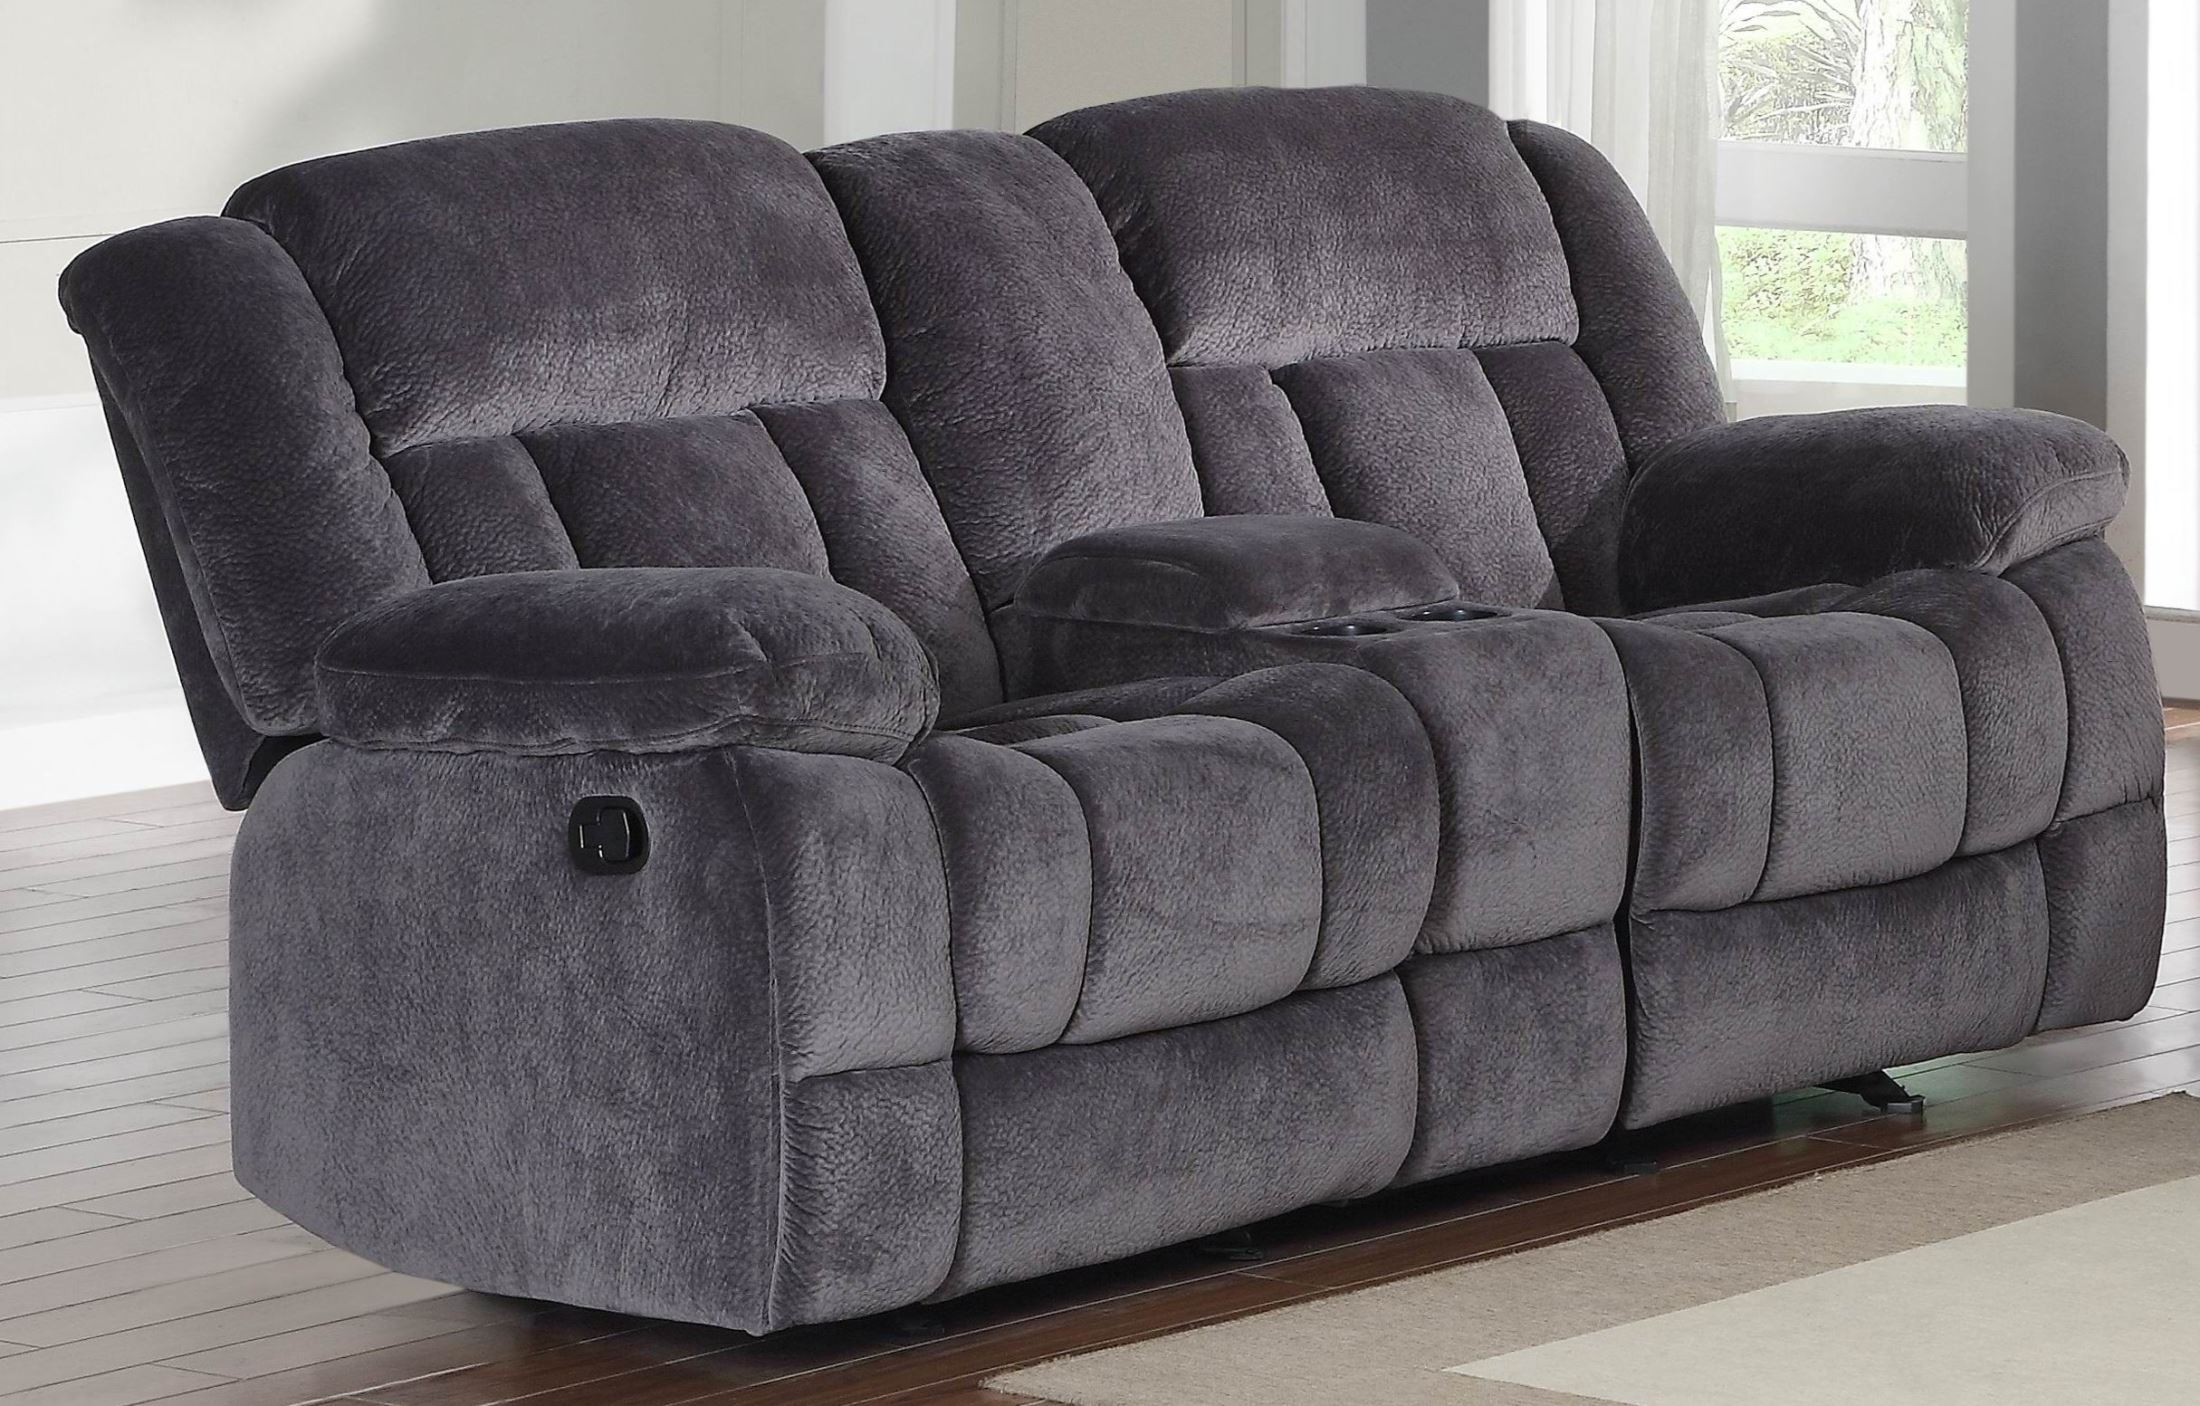 Laurelton Doble Glider Reclining Loveseat With Center